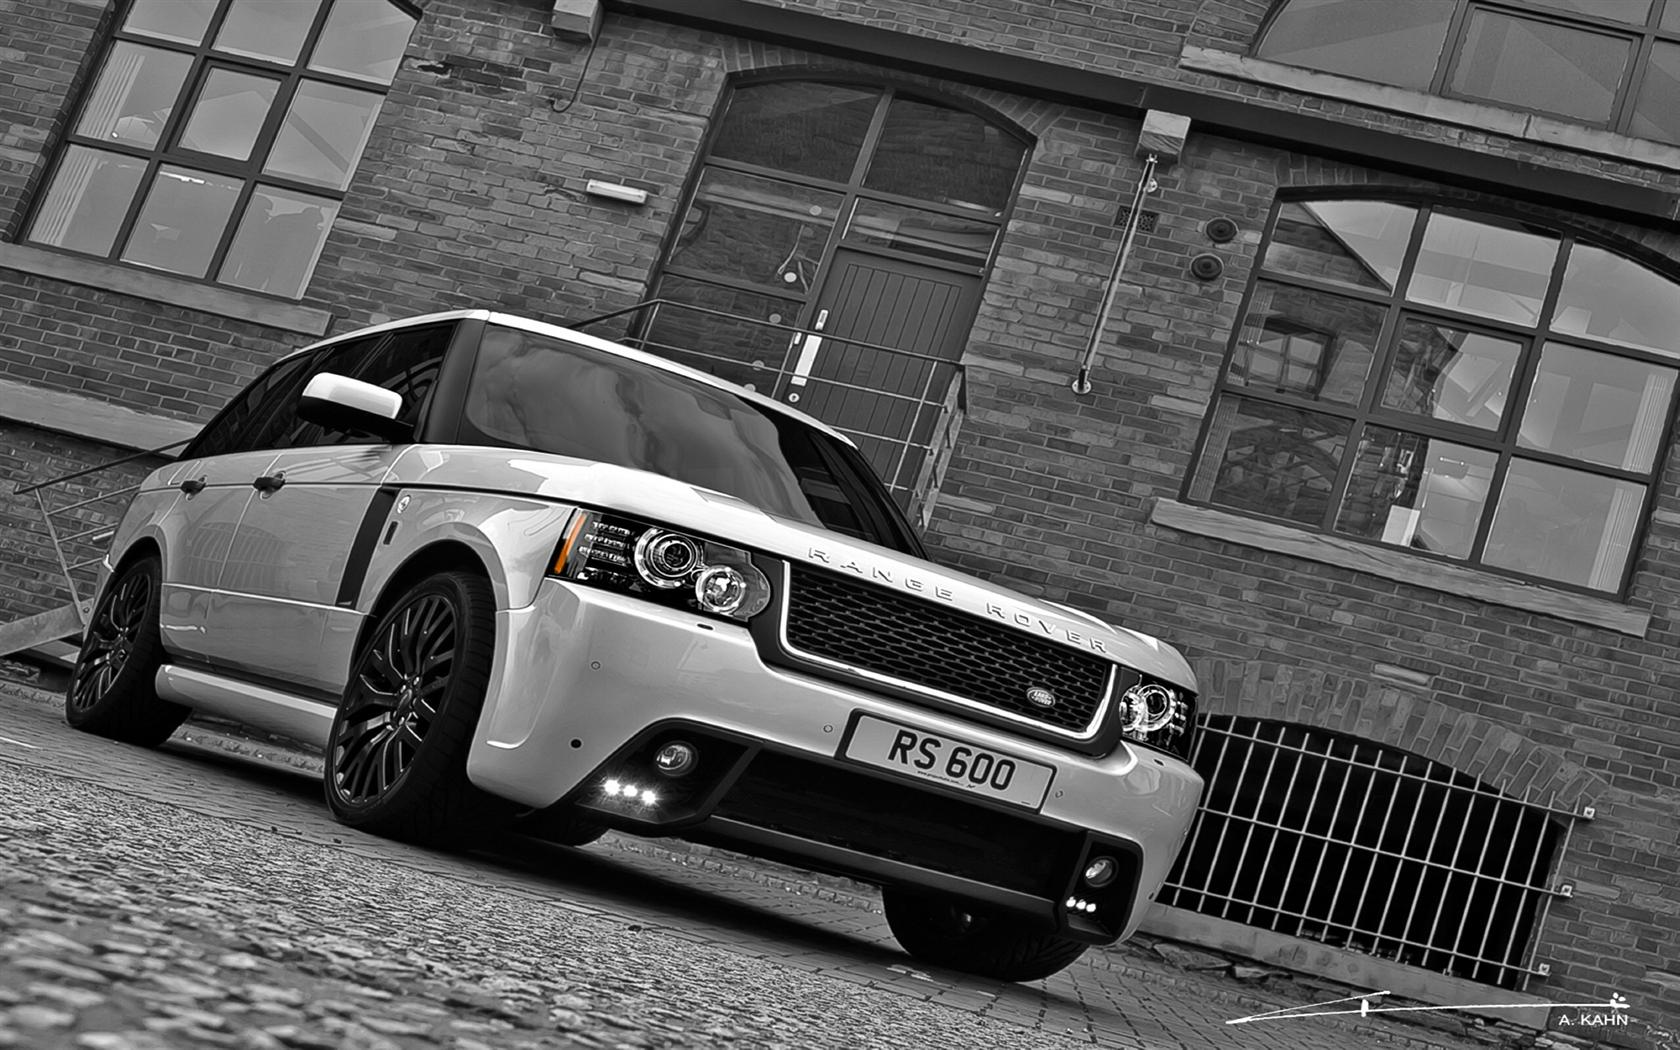 2011 A Kahn Range Rover 5.0 Cosworth Autobiography Image